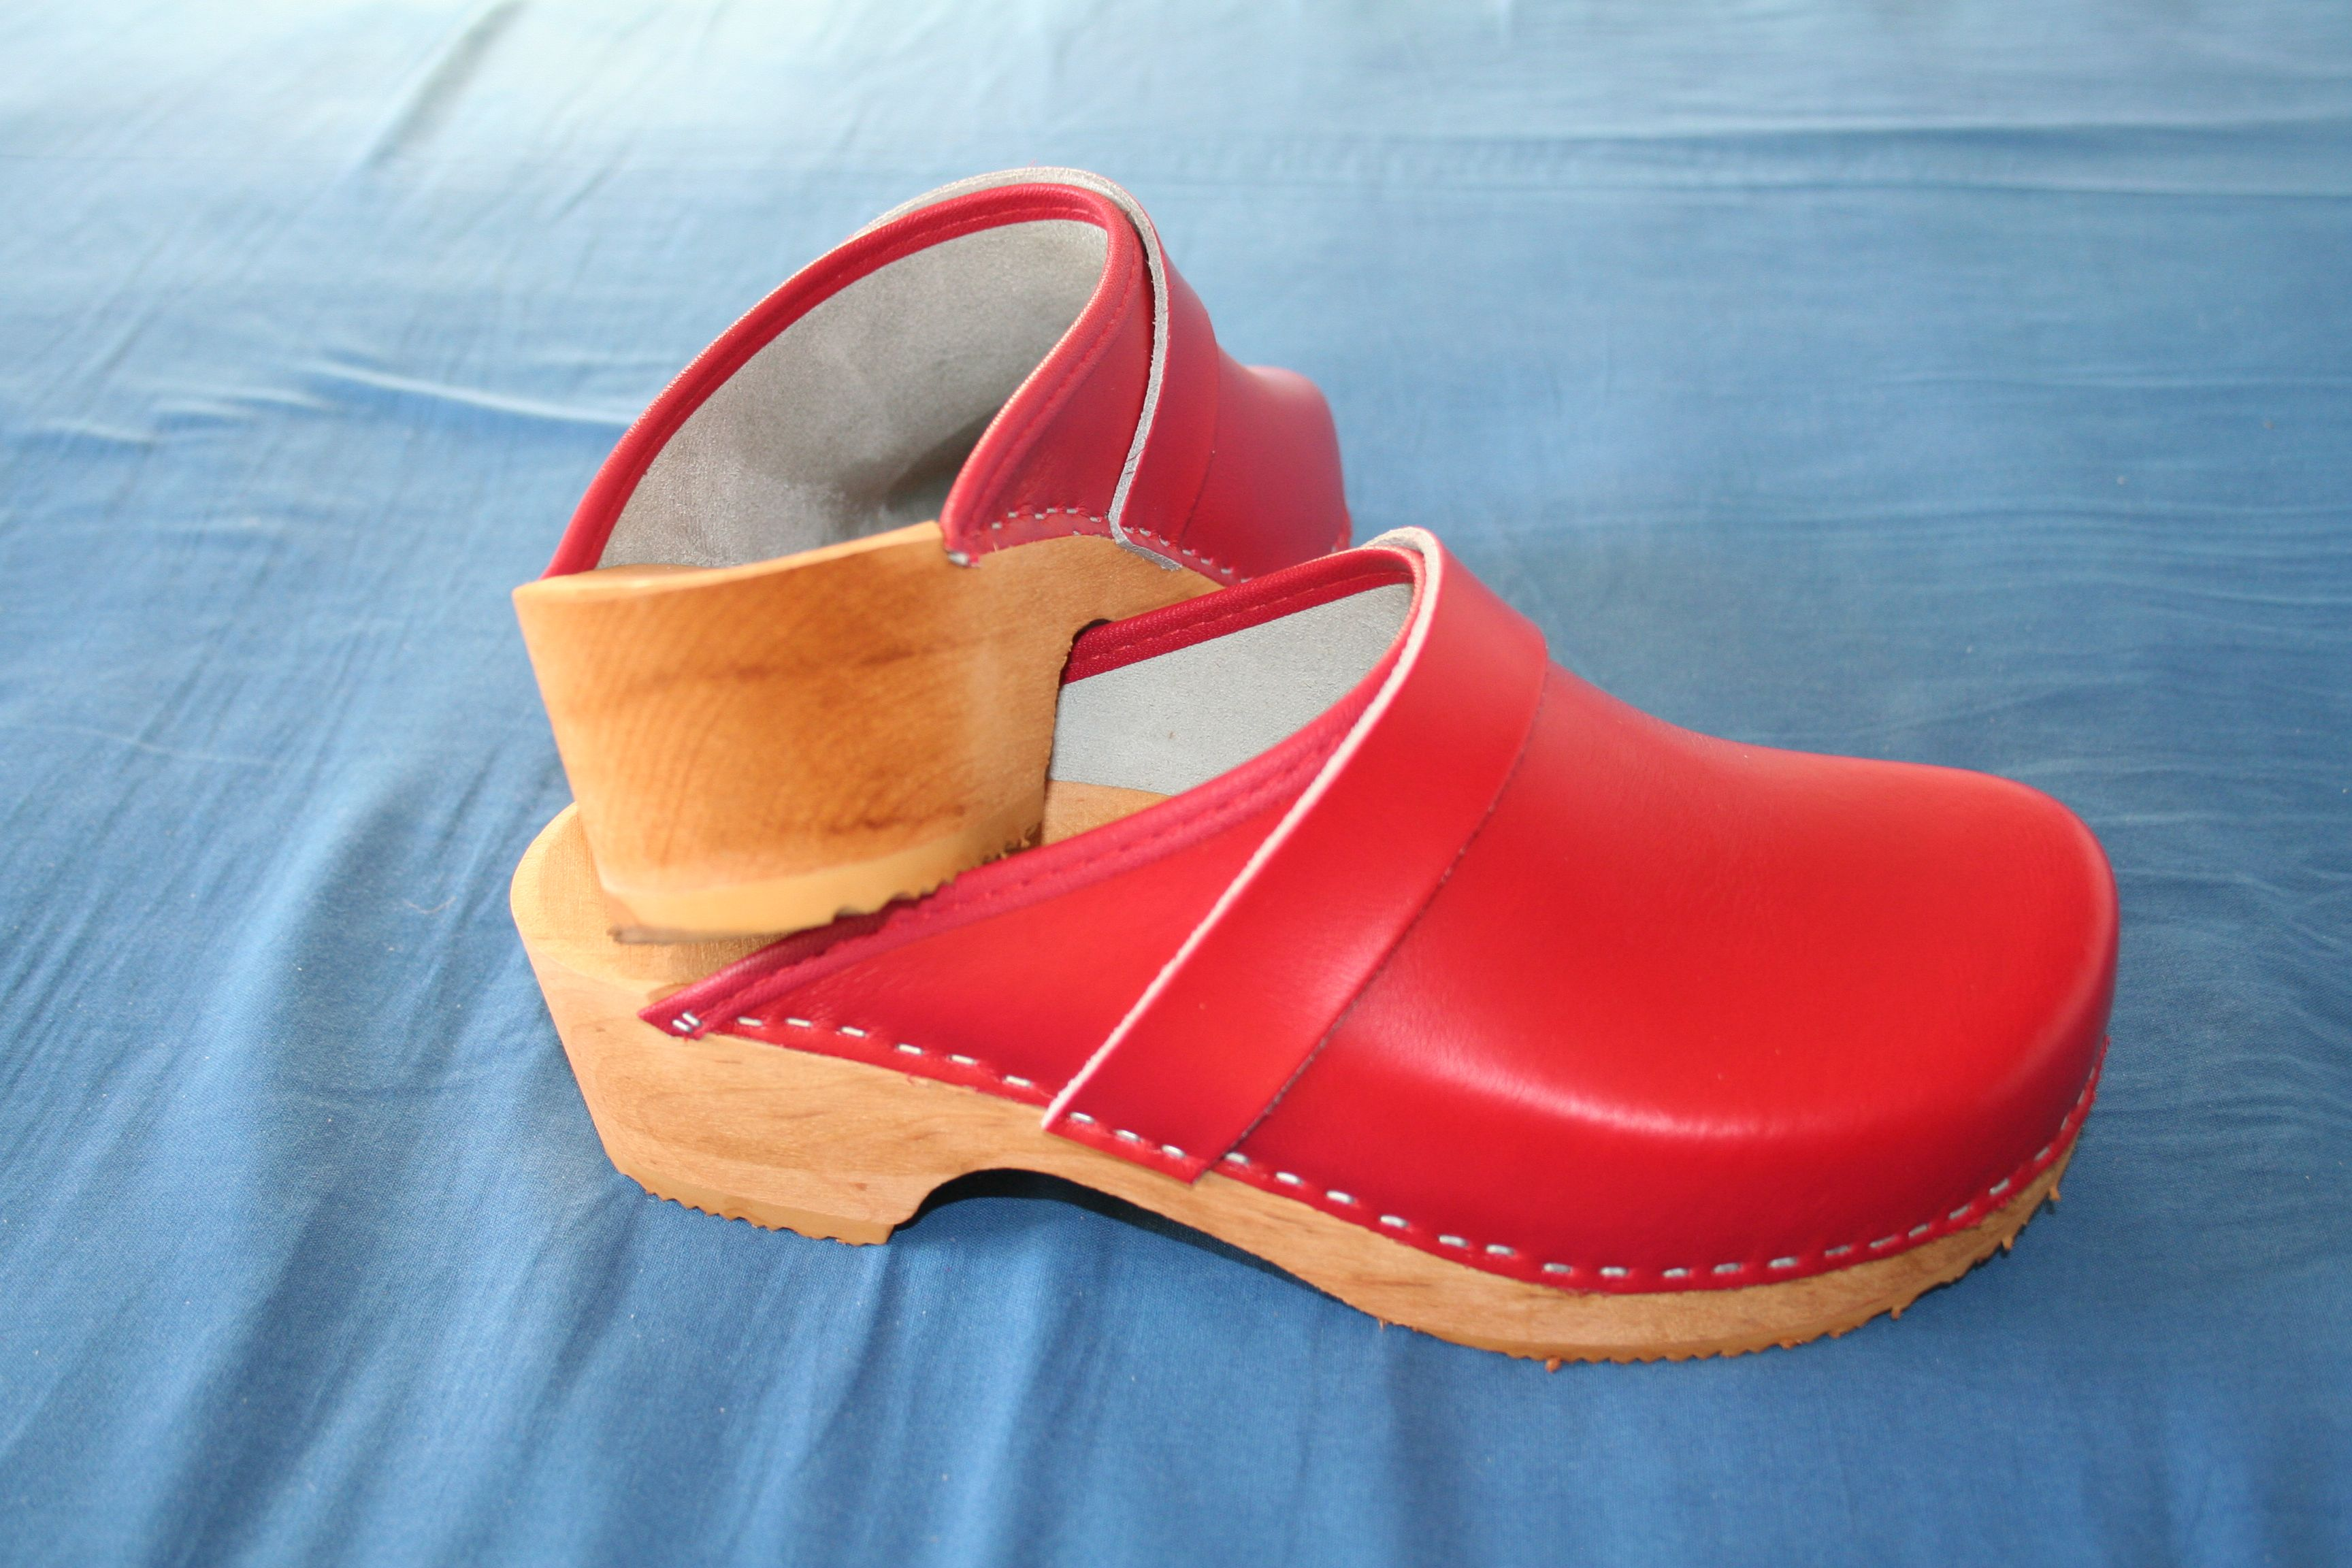 promo codes meet super cheap Classic red clogs - Danish design | Sabots en 2019 | Sabots ...